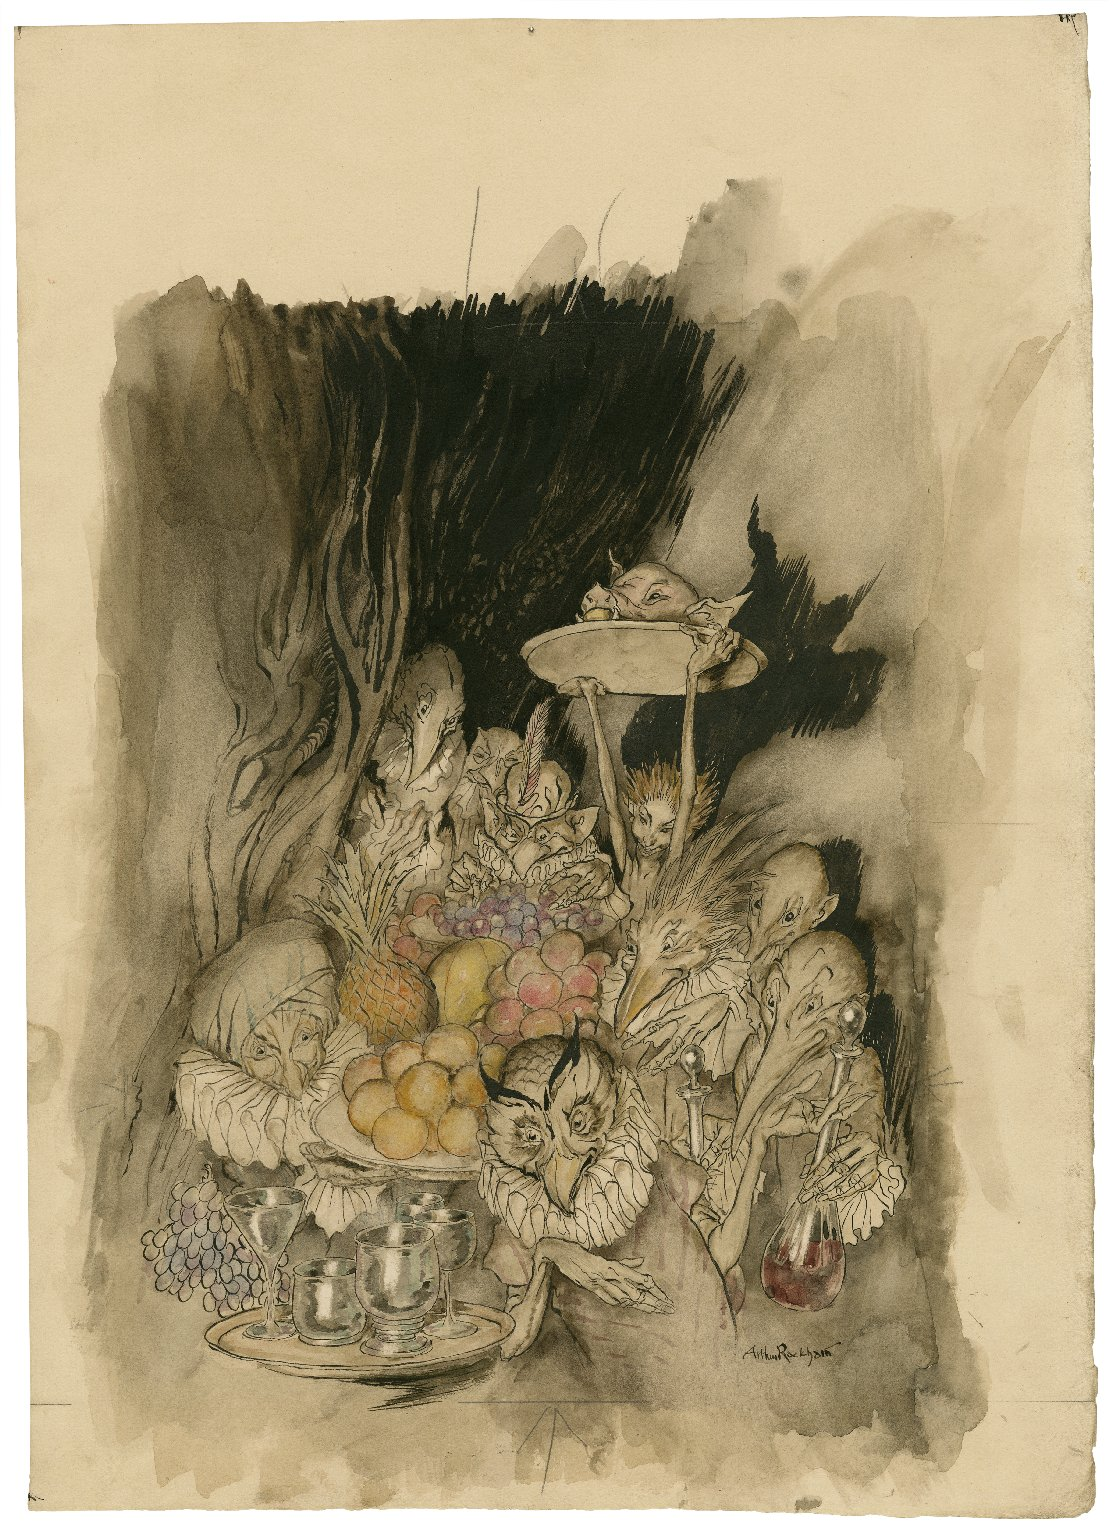 Enter several strange shapes, bringing in a banquet ... inviting the King, etc., to eat. [The tempest] III. iii. 19 [graphic] / Arthur Rackham.